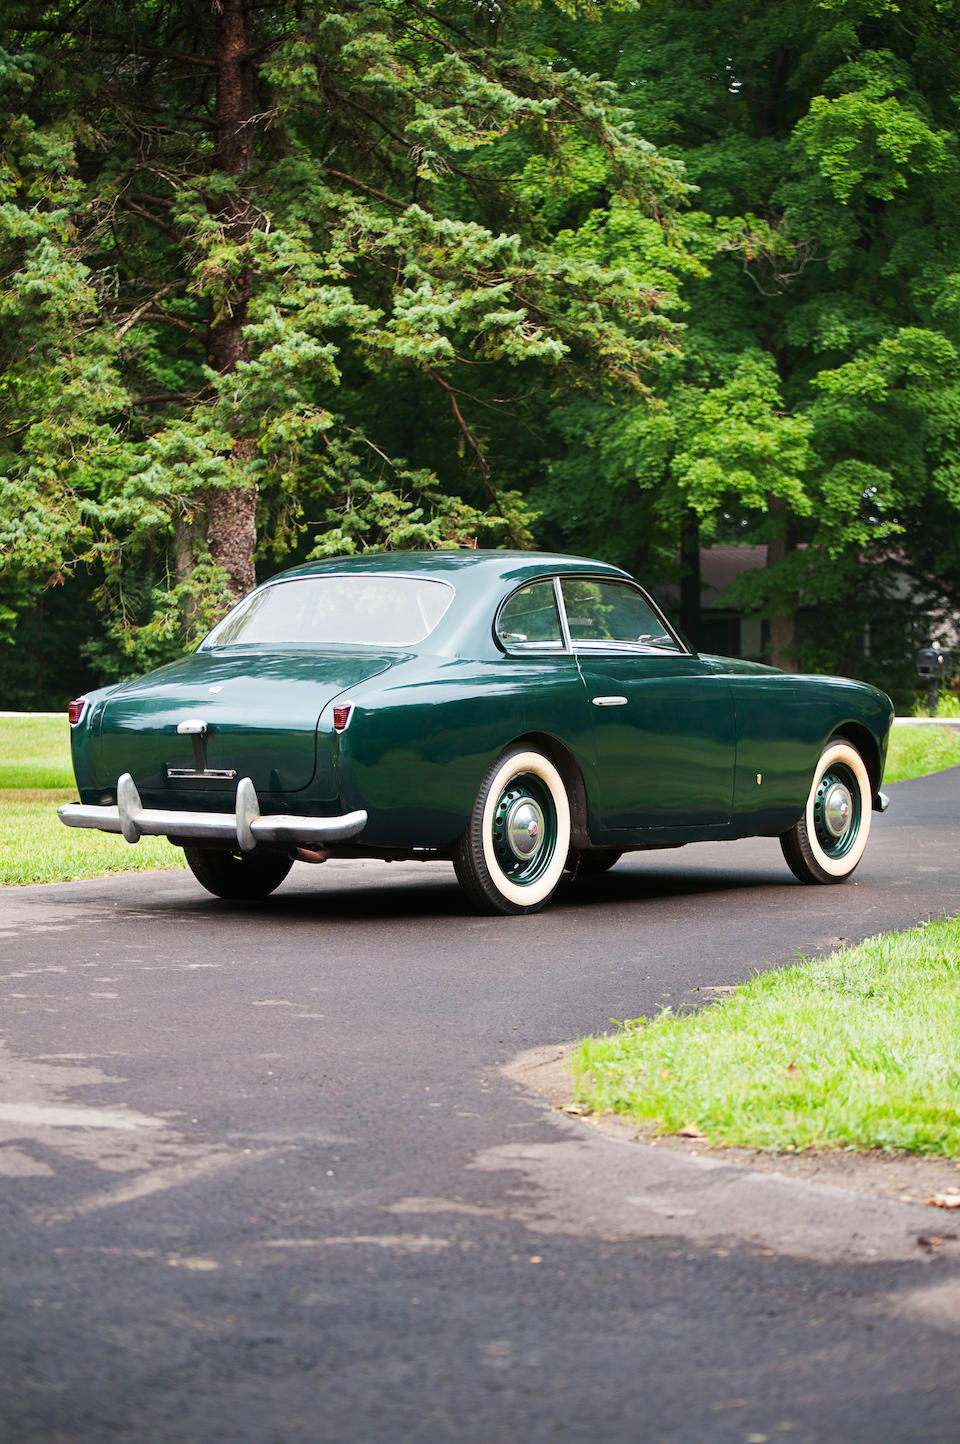 <b>1955 Arnolt-MG Coupe  </b><br />Chassis no. 26873 <br />Engine no. 27325<br />Body no. 4351